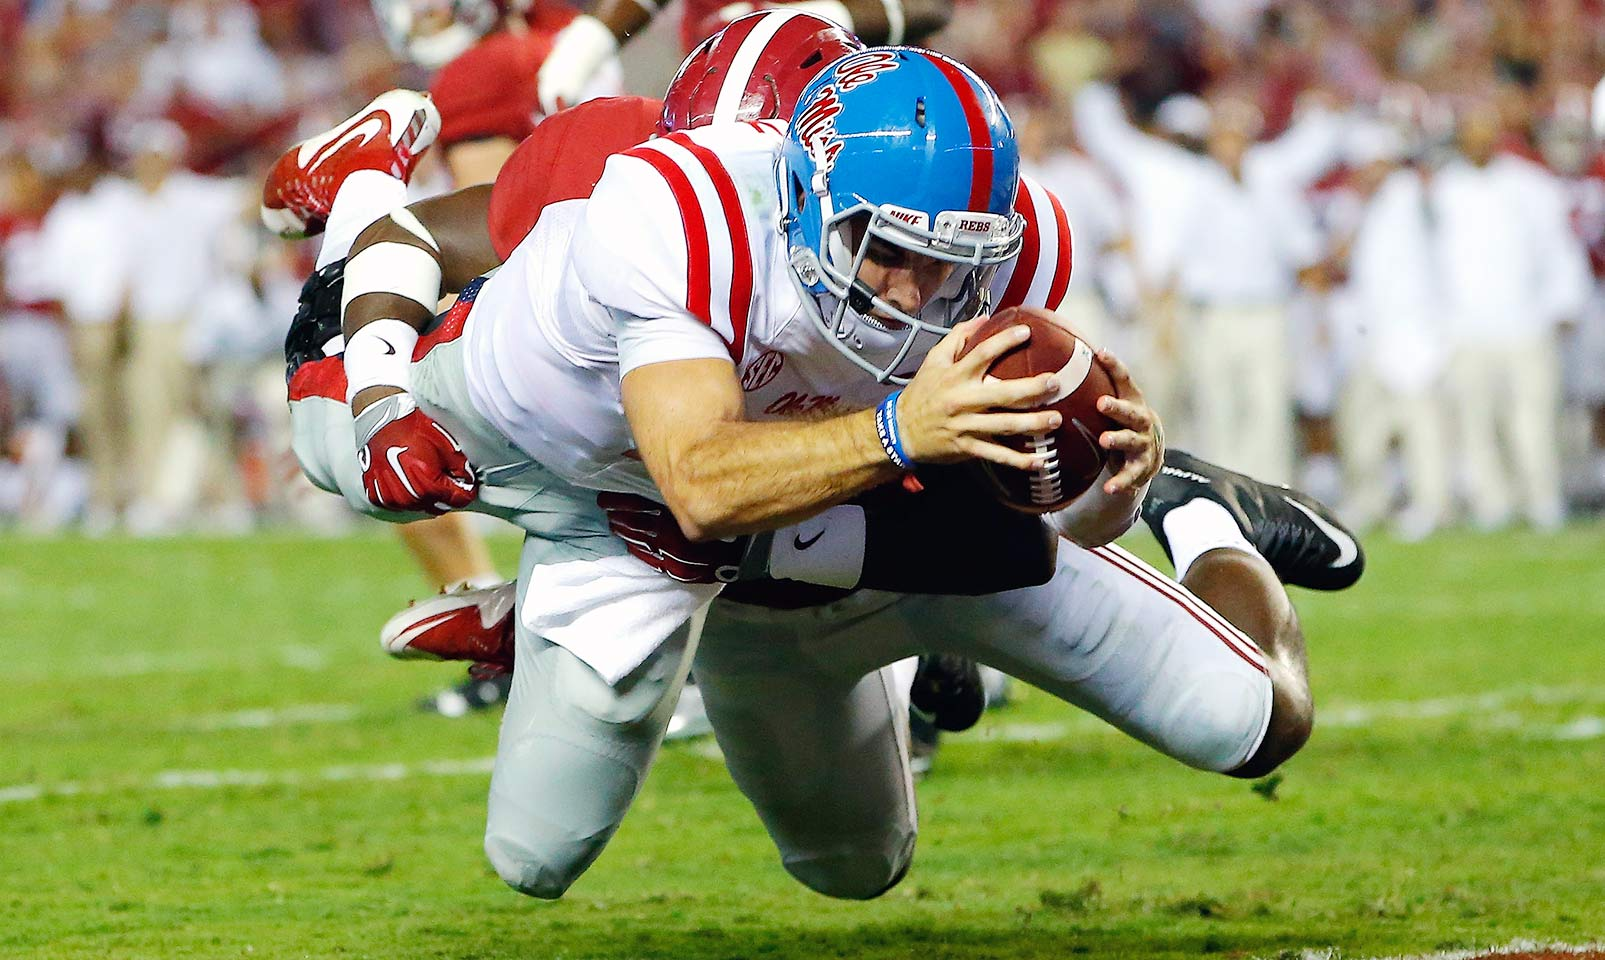 Ole Miss 43, Alabama 37: For the second straight year, the Rebels took down the Crimson Tide, this time in Tuscaloosa. Ole Miss capitalized on five Alabama turnovers and 341 yards passing from Chad Kelly to build a 43–24 lead before narrowly hanging on for the win.